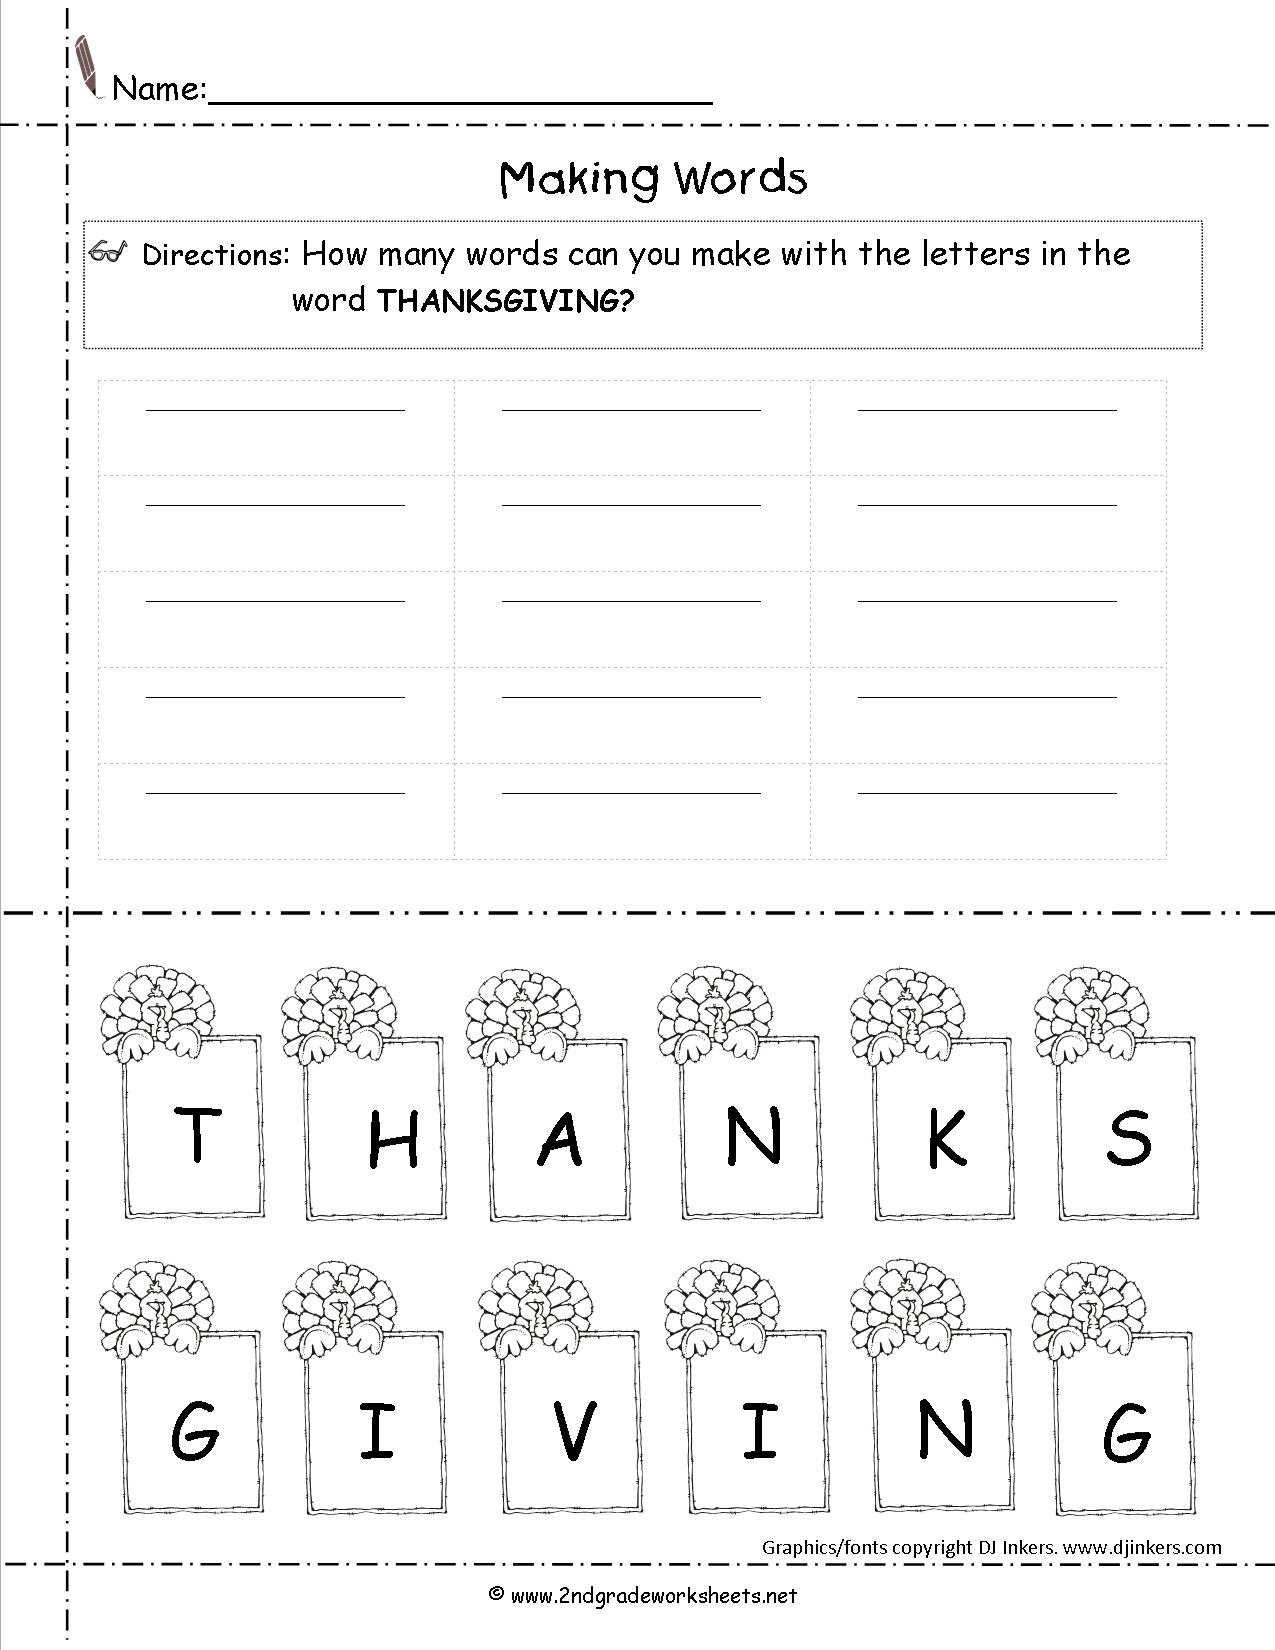 Thanksgiving Printouts From The Teacher's Guide - Free Printable Thanksgiving Writing Paper